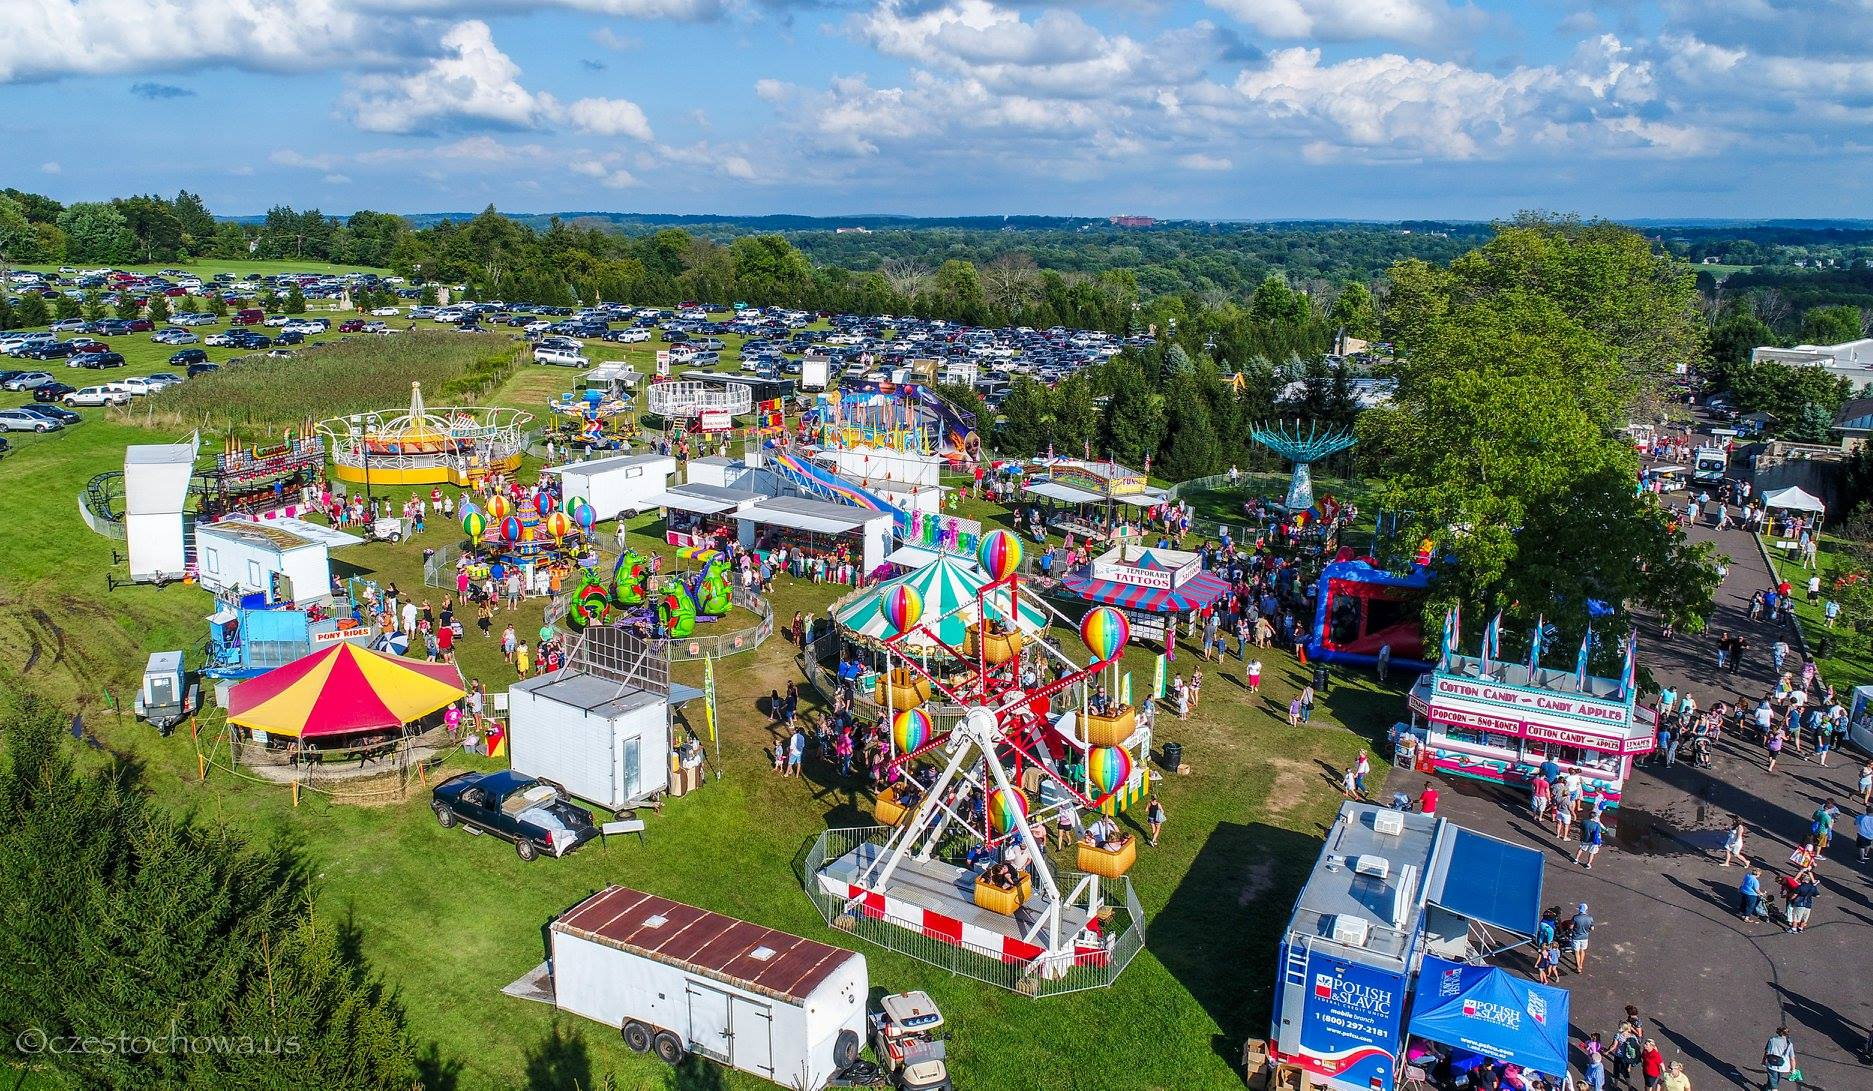 Polish-American Family Festival & Country Fair in Doylestown, PA